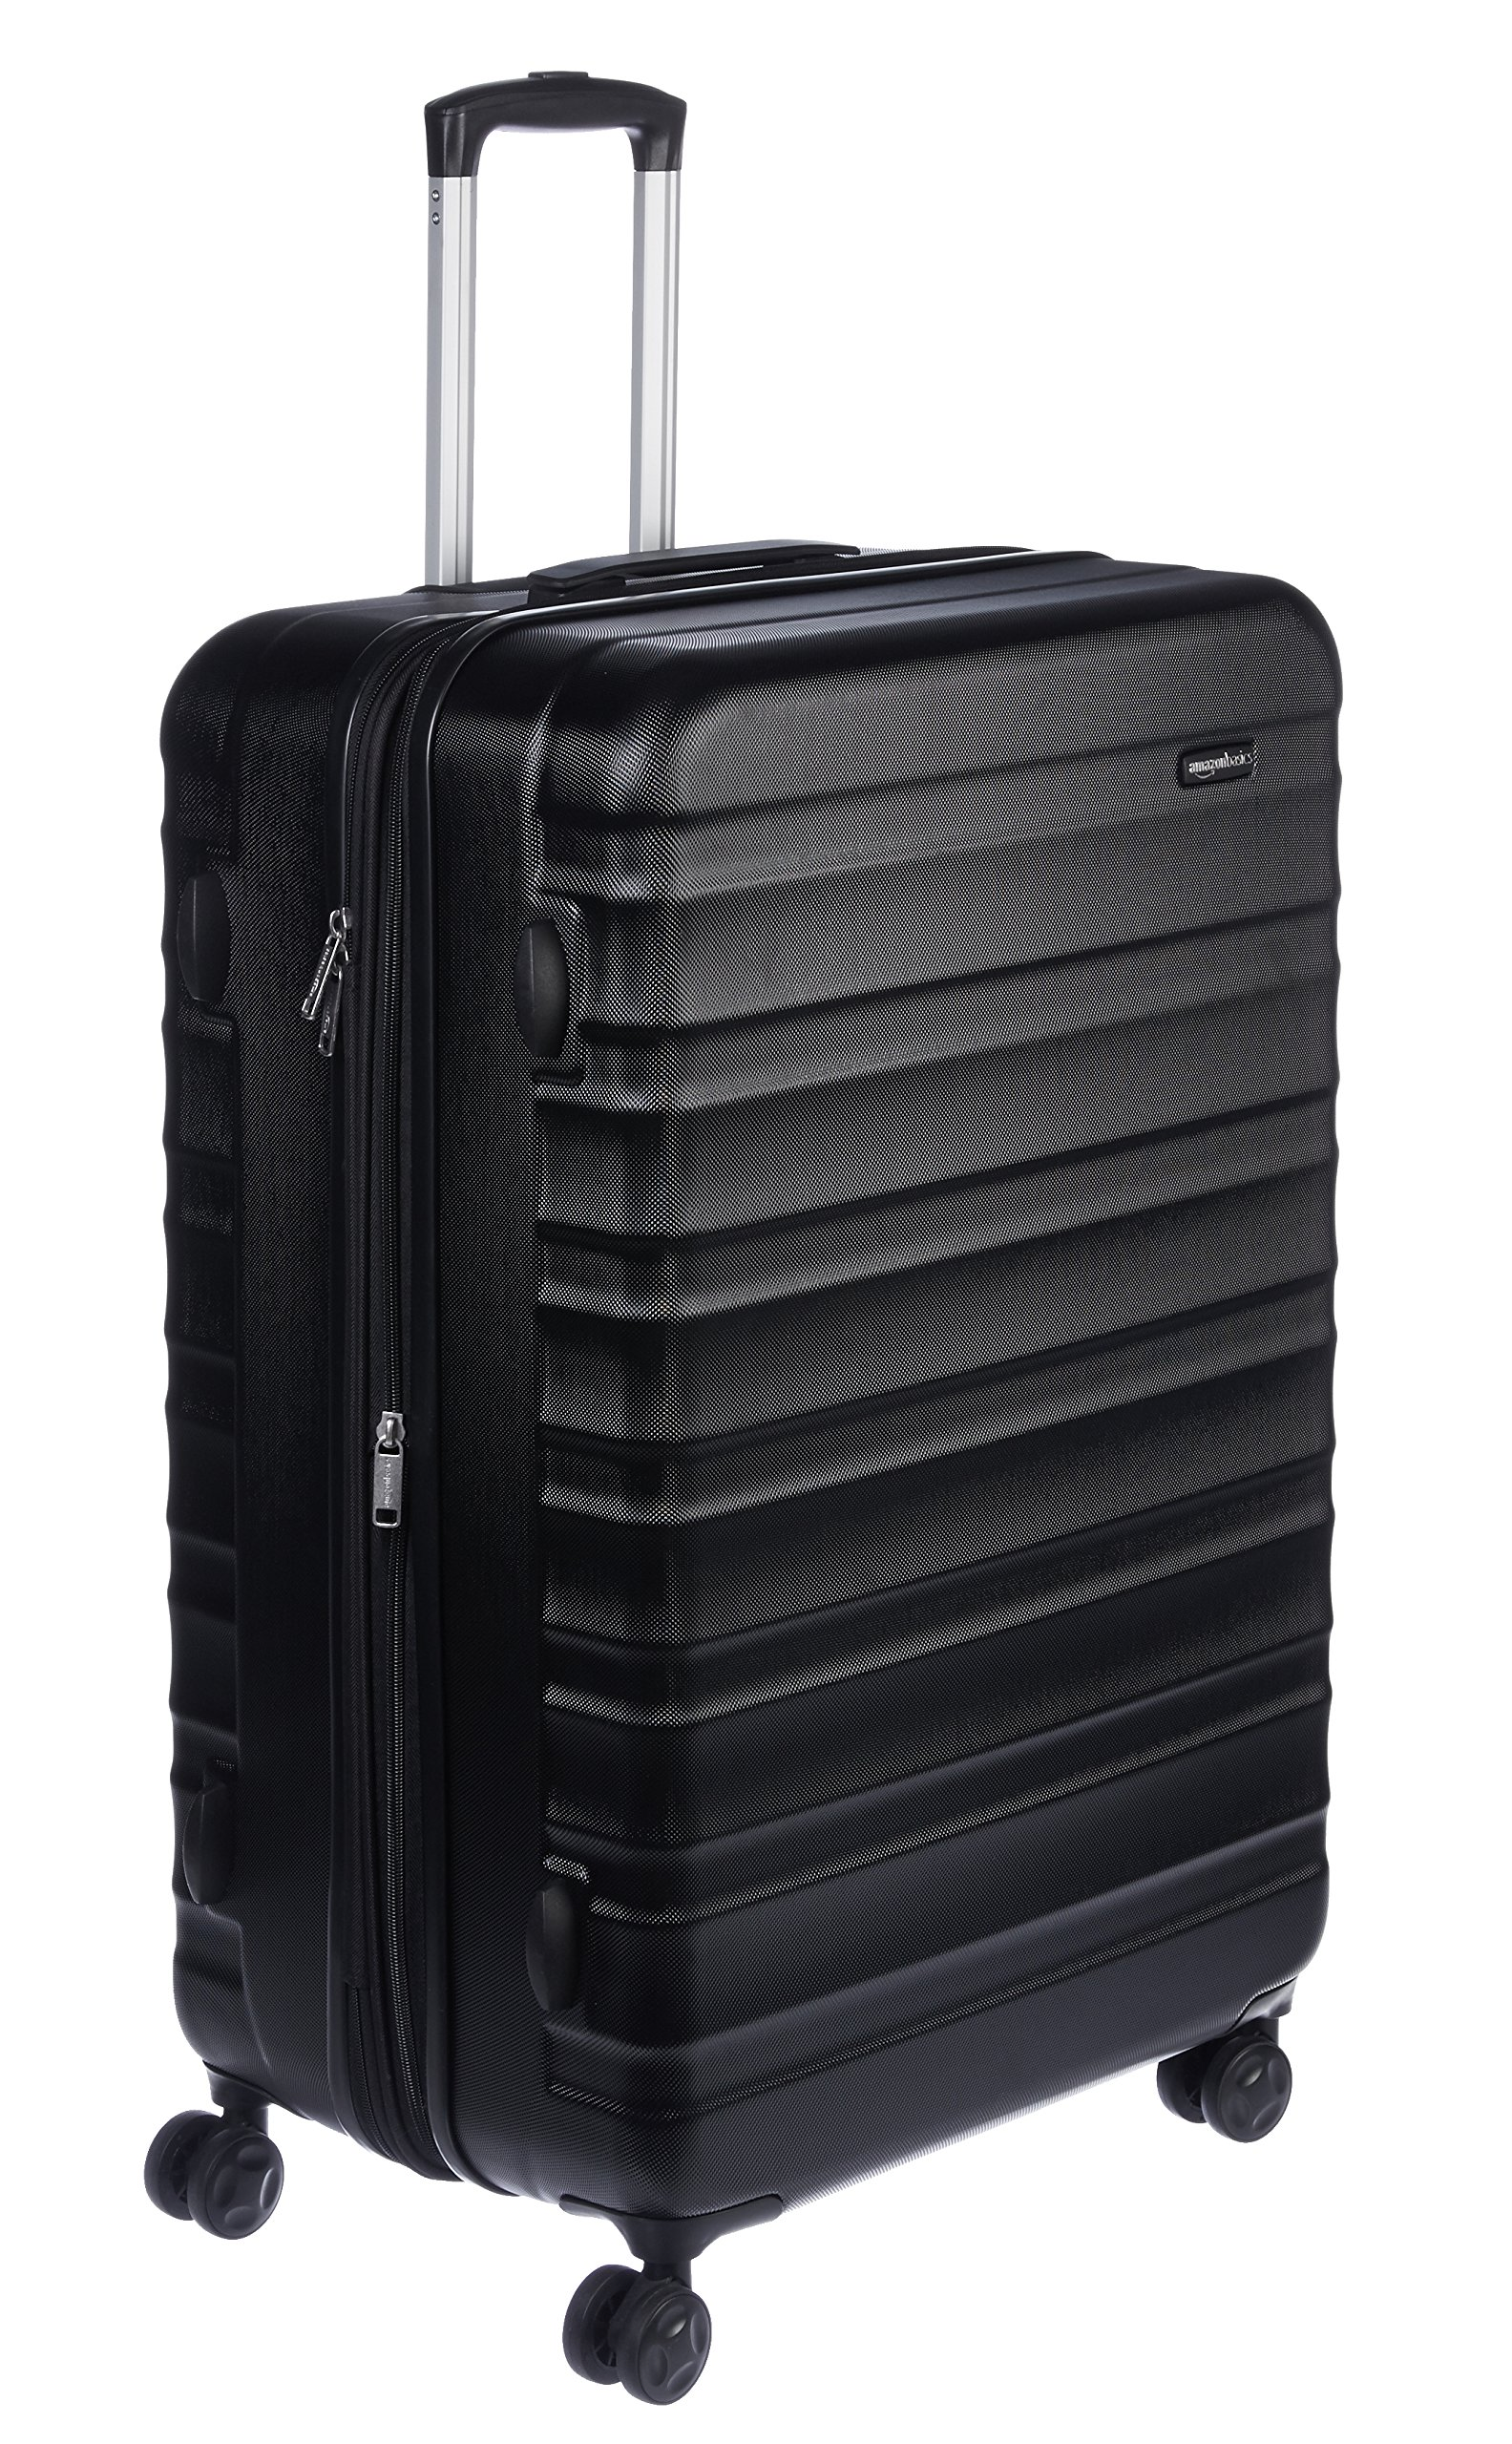 AmazonBasics Hardside Spinner Travel Luggage Suitcase - 28 Inch, Black by AmazonBasics